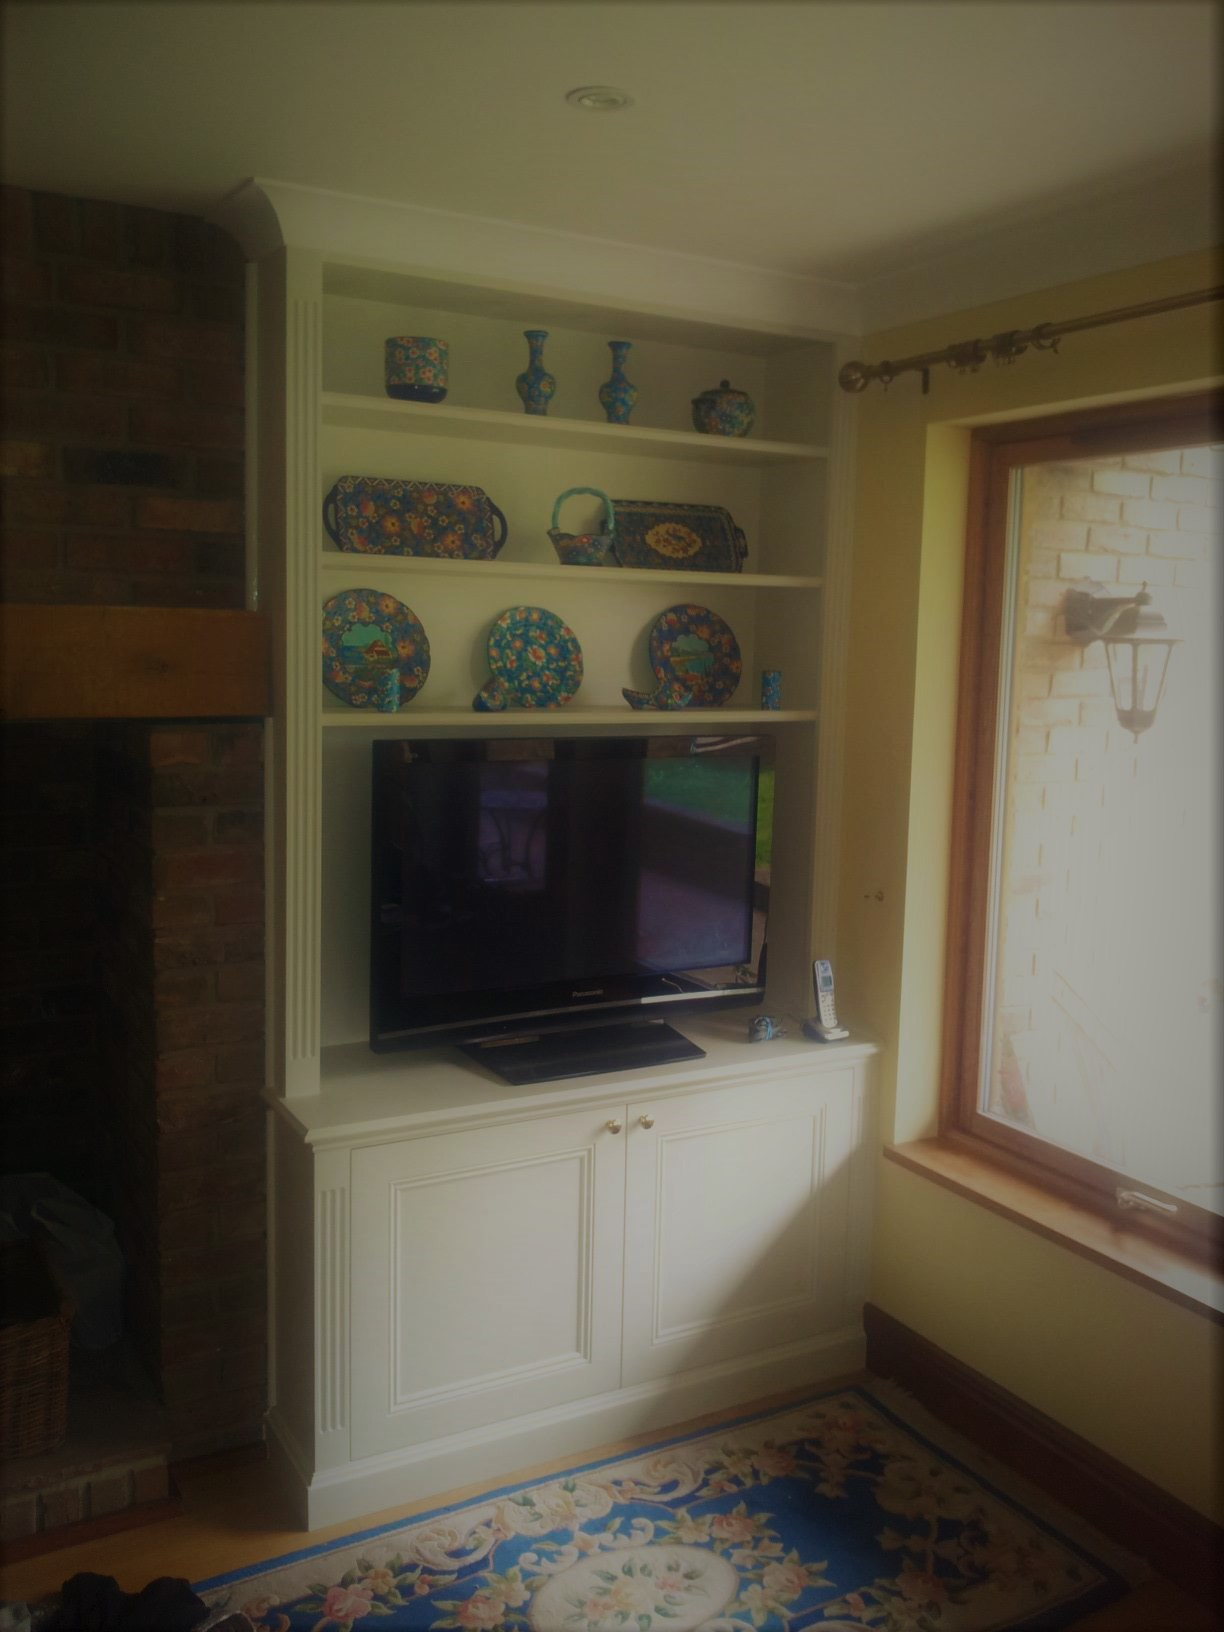 A classic alcove unit, utilizing the top box space with a free standing television and ornaments above.